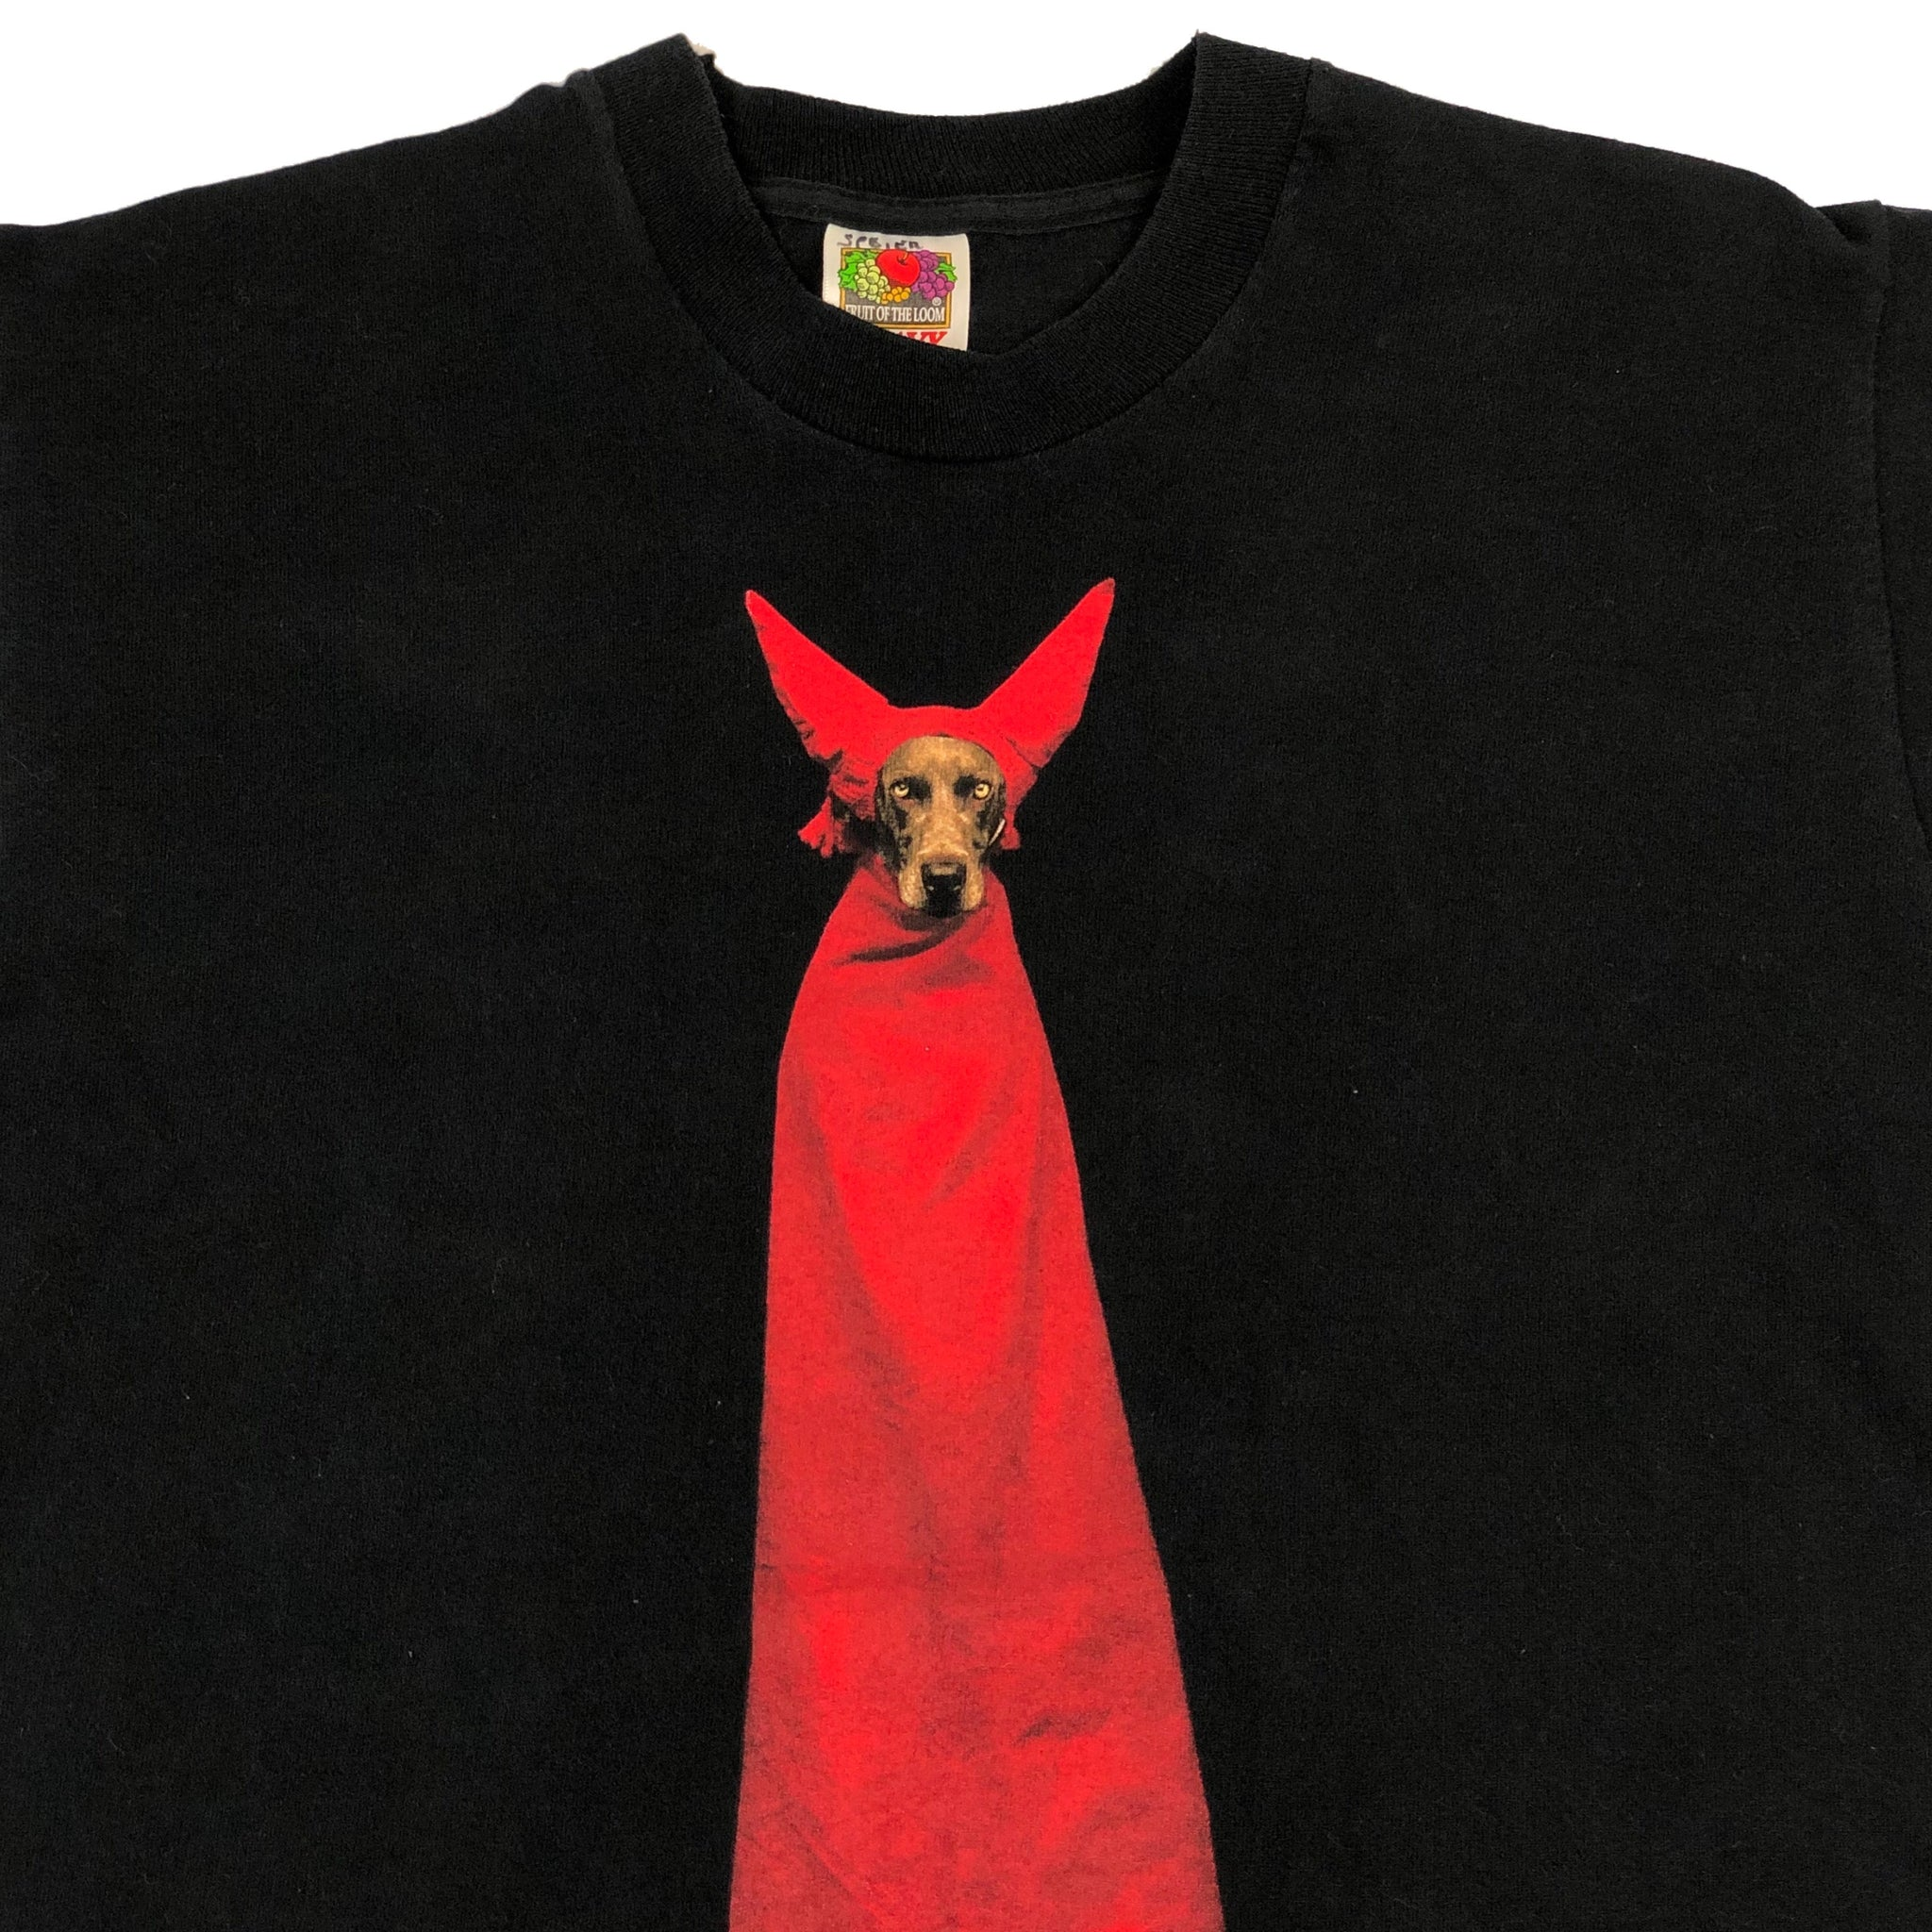 90's William Wegman T-Shirt